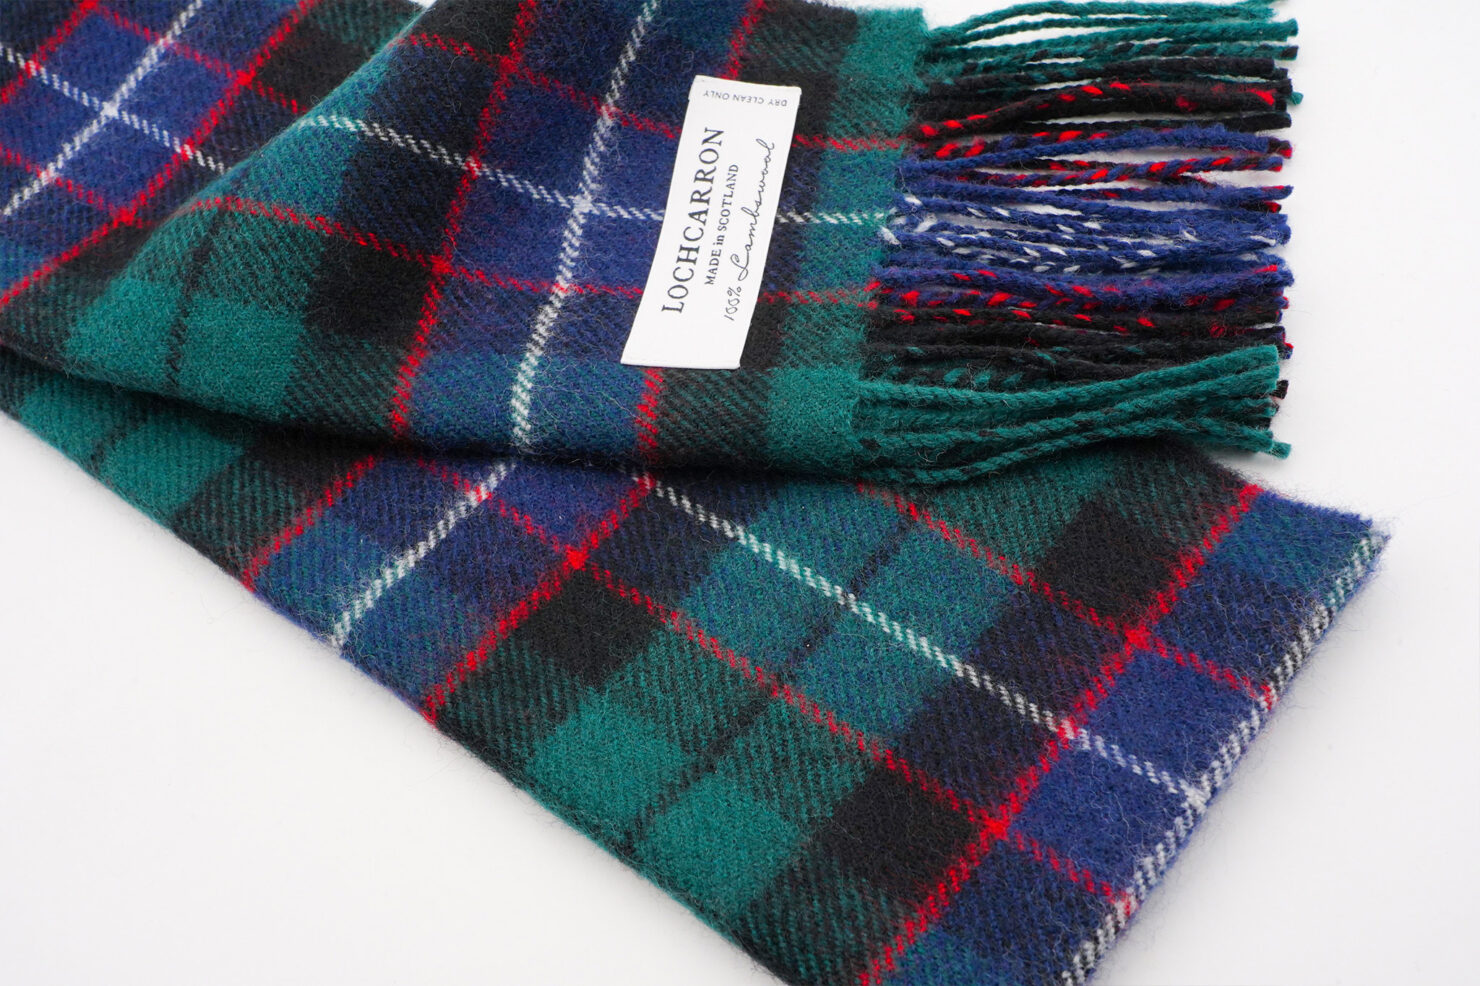 BRUSHWOOL LONG MITCHELL SCARF - LOCHCARRON OF SCOTLAND